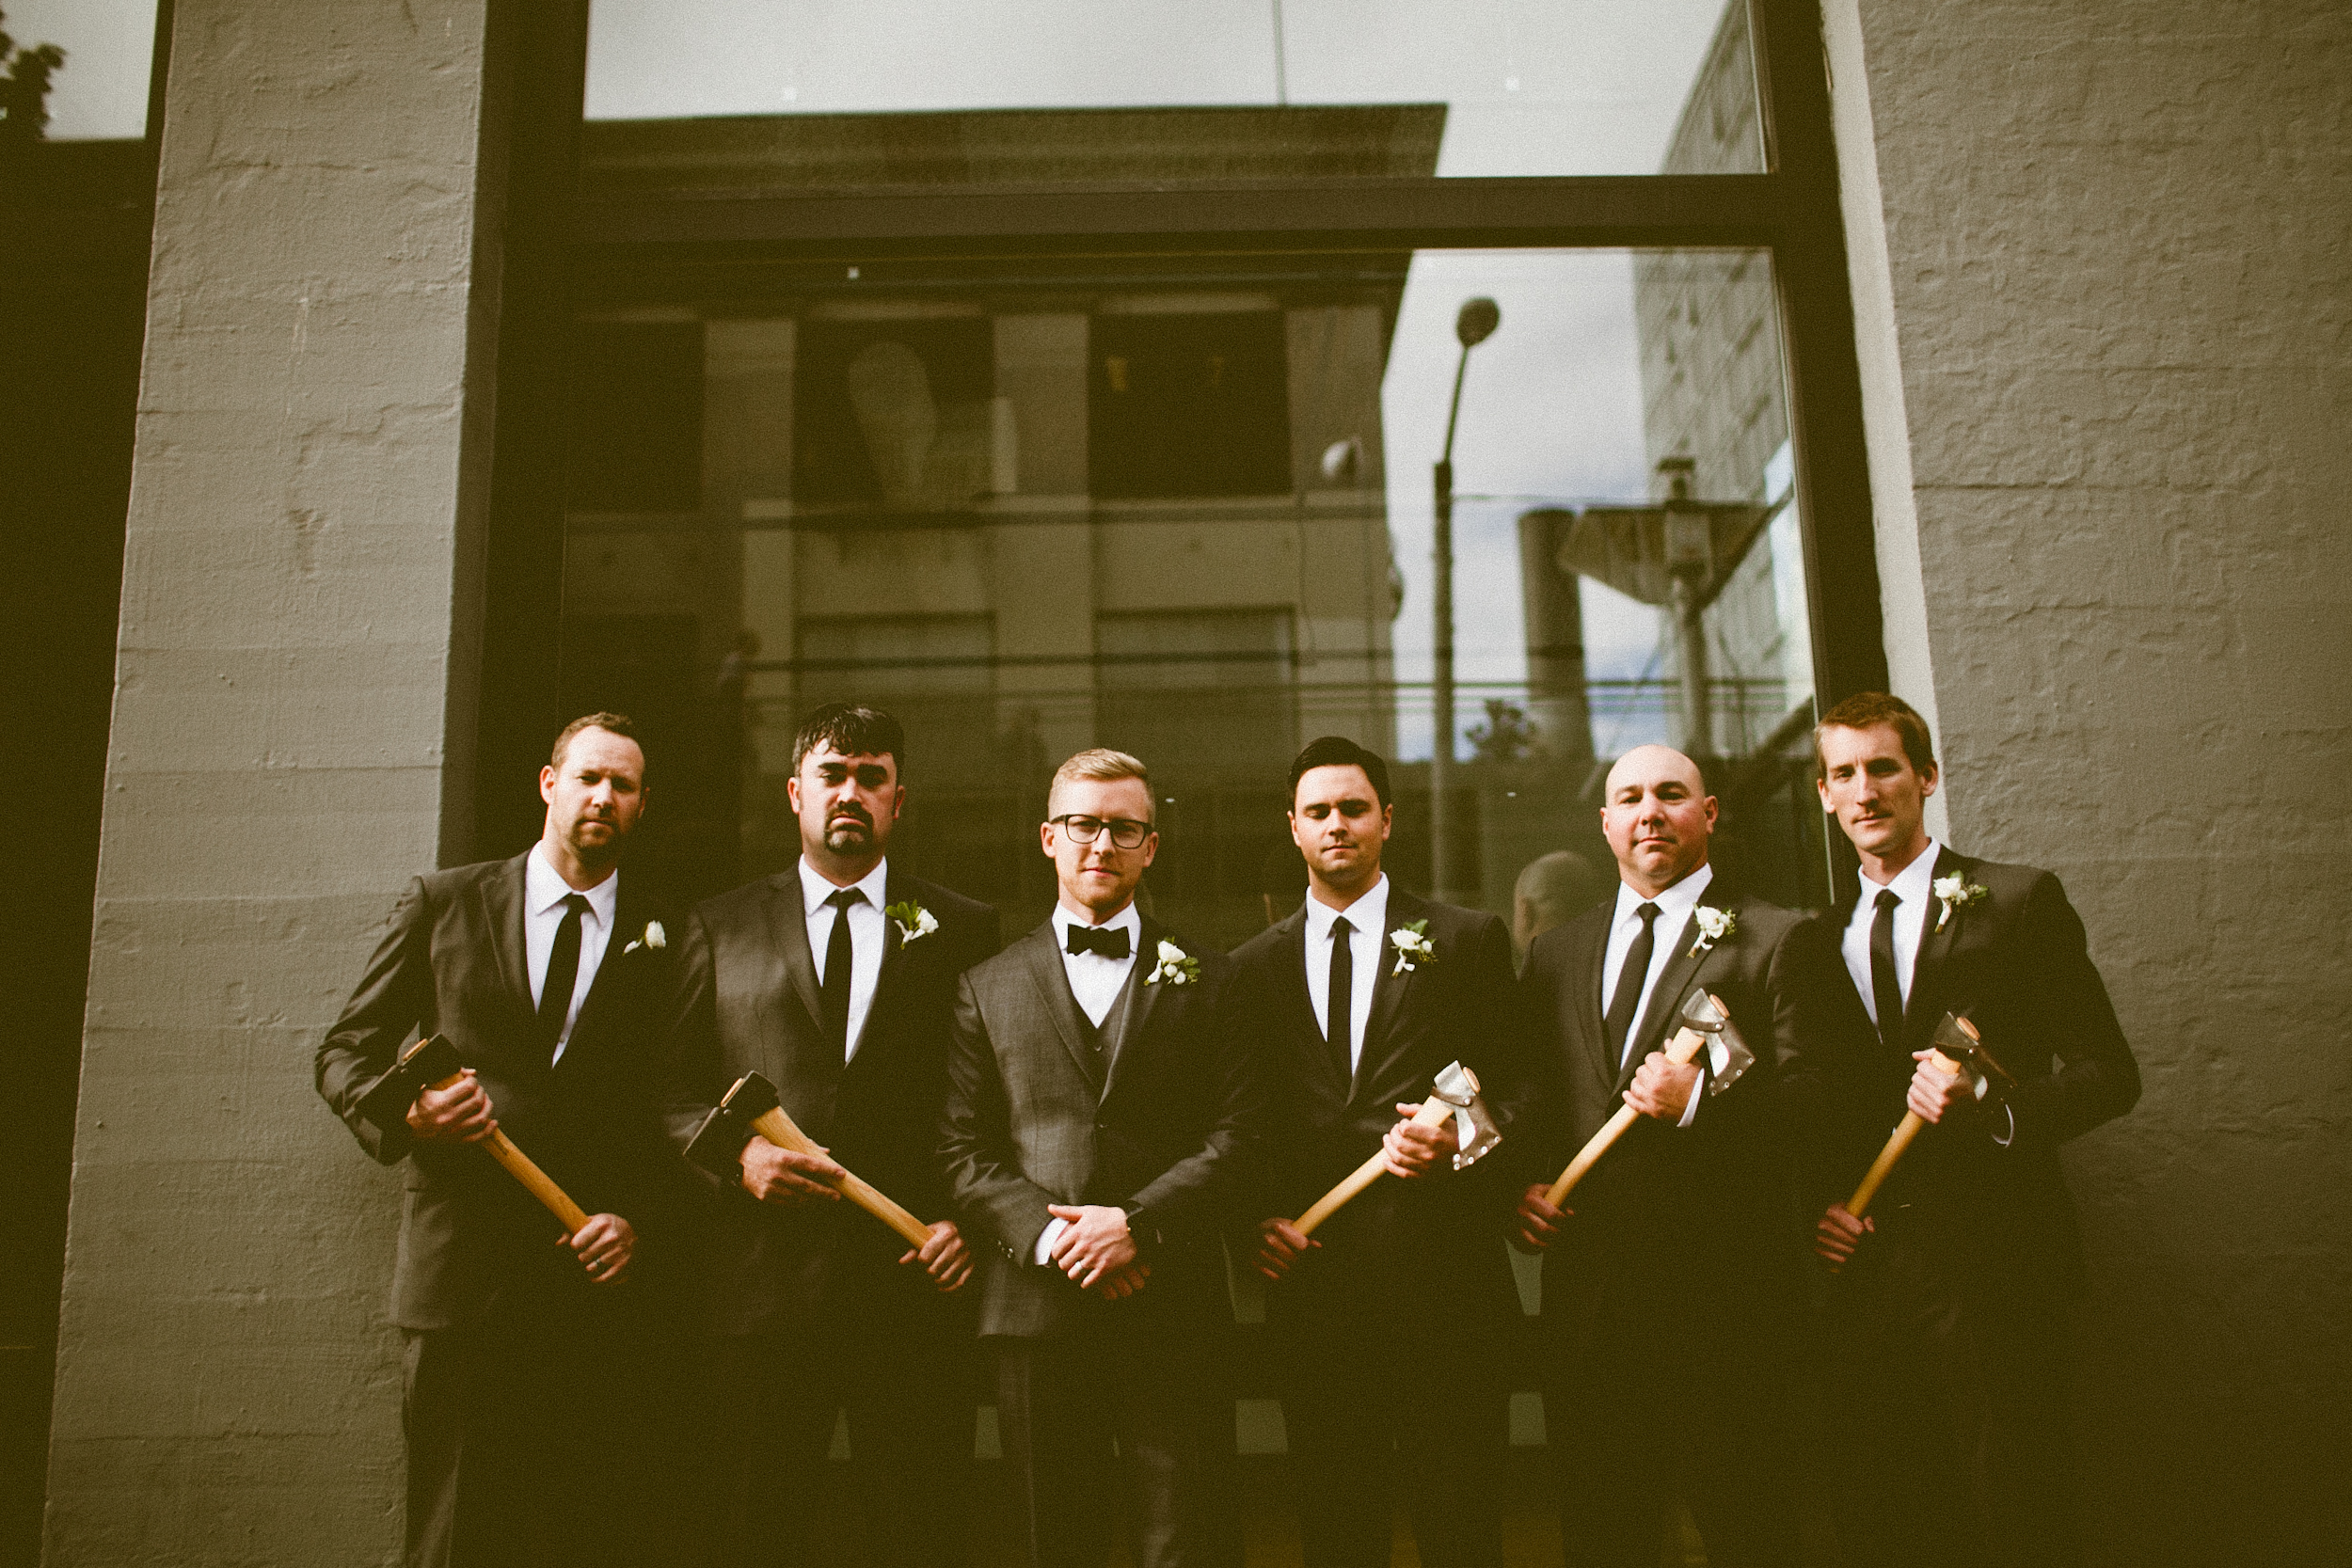 Sodo Park Wedding in Seattle   Groomsmen posing with groom and groomsmen gifts   Perfectly Posh Events, Seattle Wedding Planner   Andria Lindquist Photography